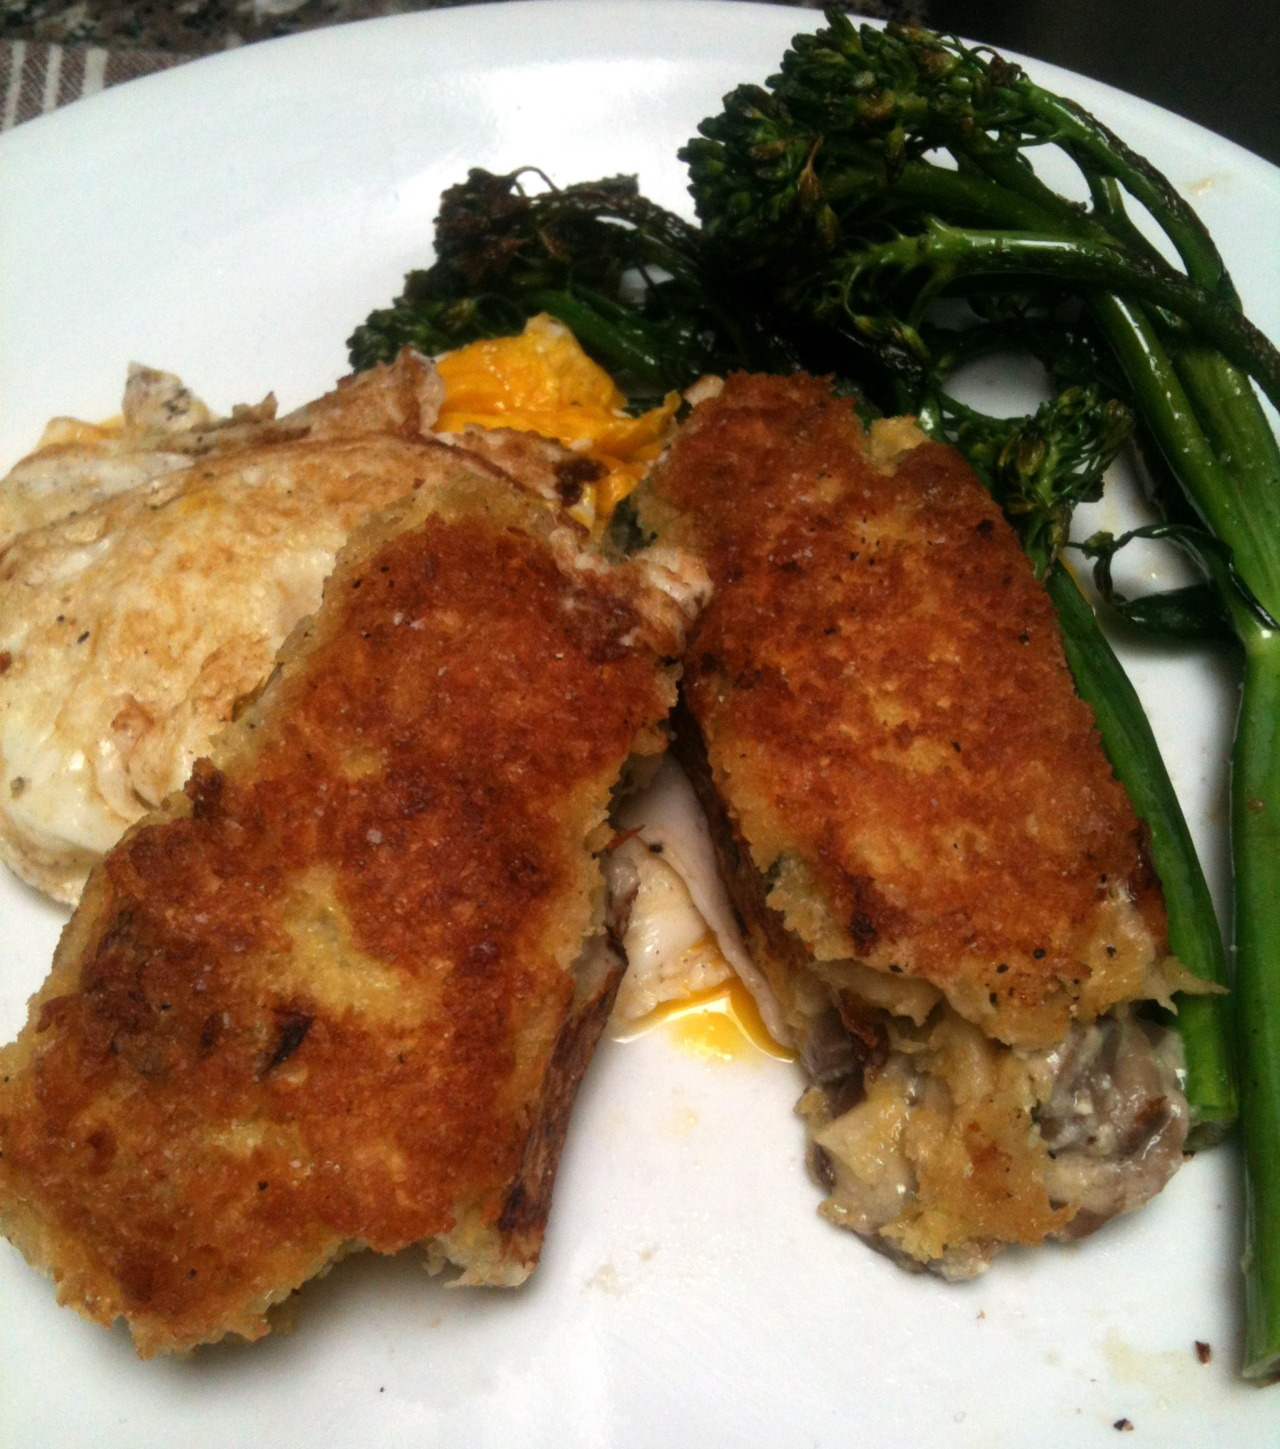 Breakfast: Slices of fried lasagna, eggs, and baby broccoli.  Noms.